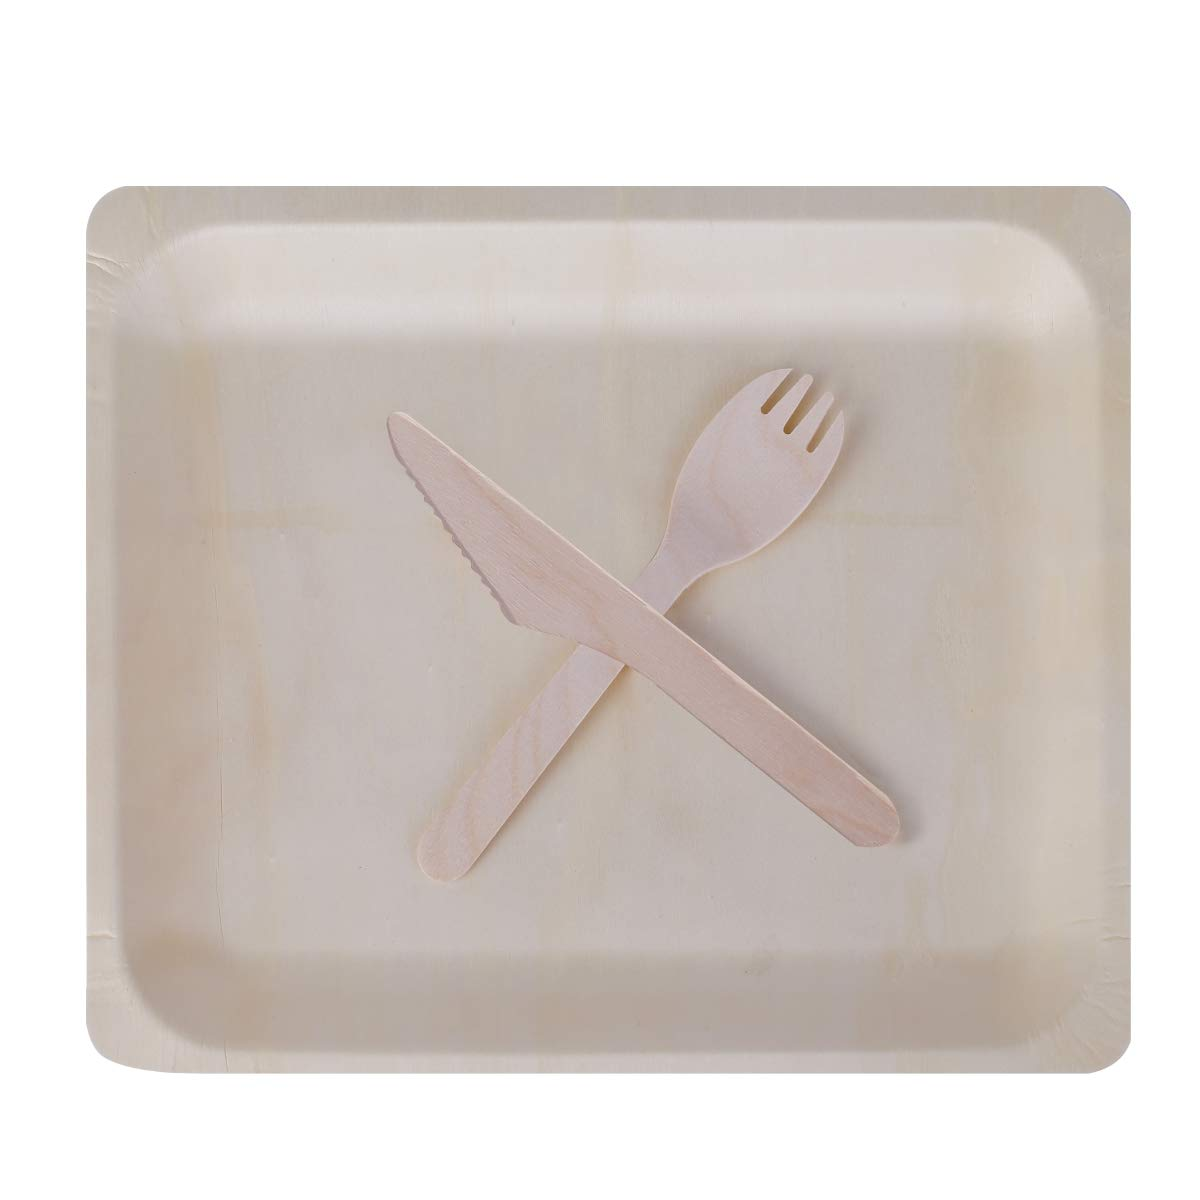 Gmark 10.5''x8.5'' Wooden Plates with Wooden Cutlery Set (25 Sets) for Party Events GM1098 by Gmark (Image #1)